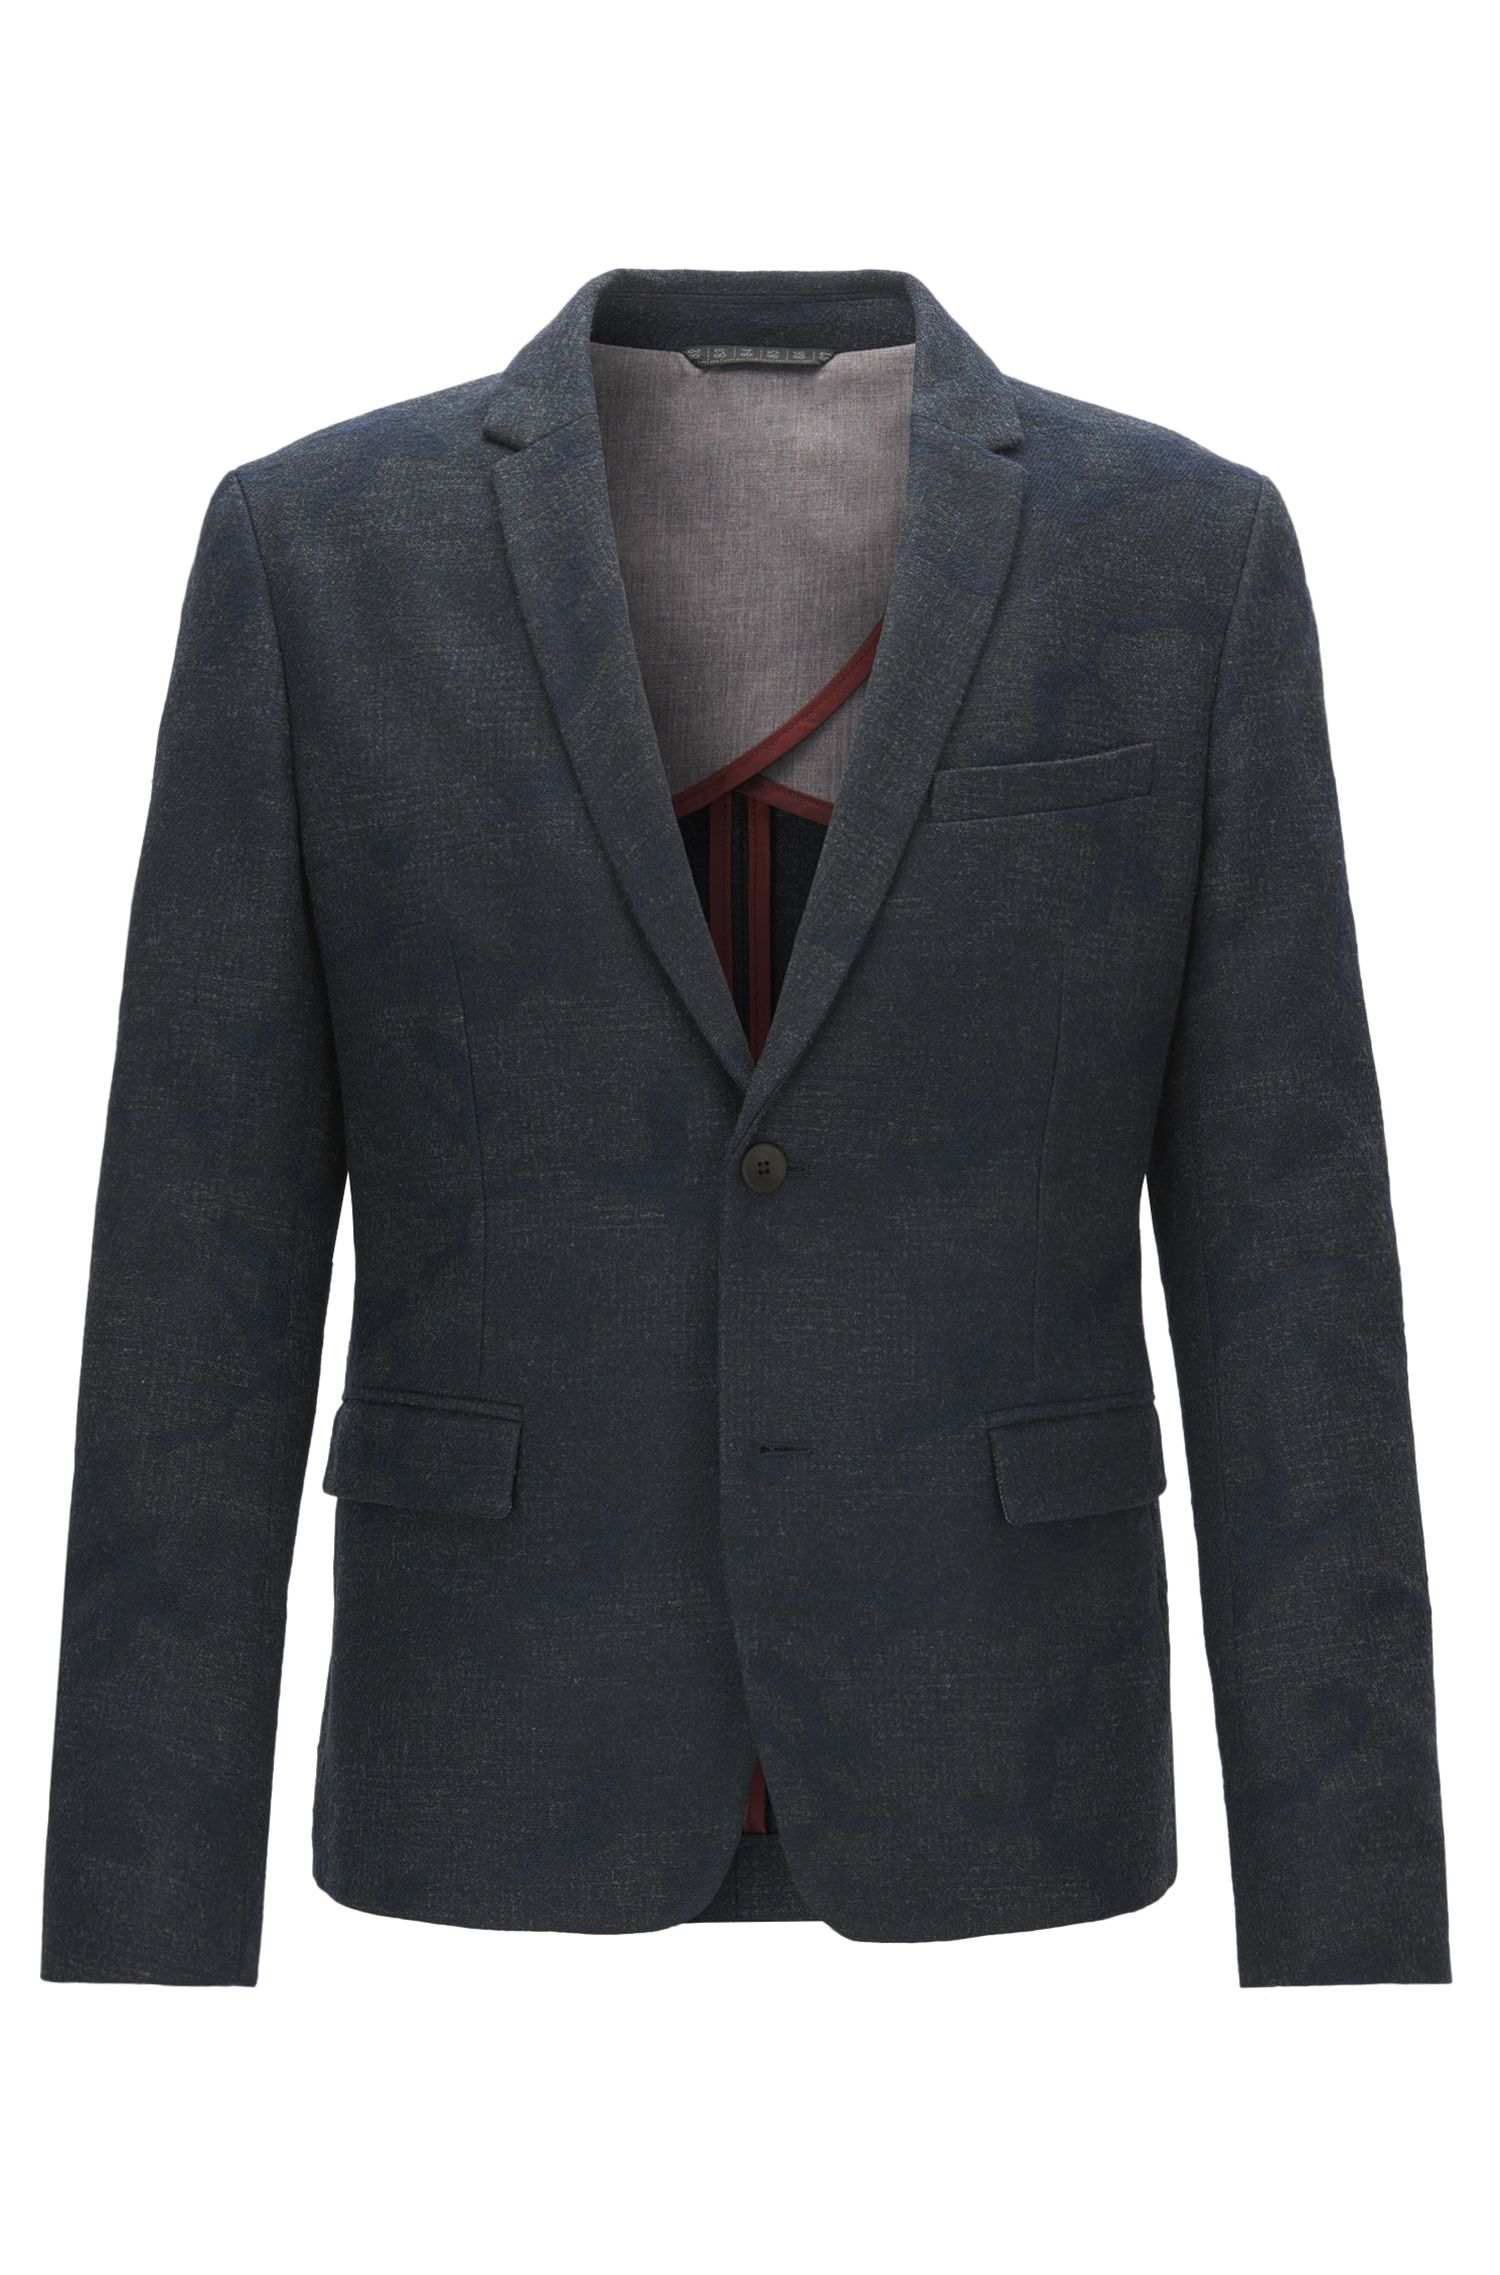 Cotton Blend Sport Coat, Slim Fit  | Bamou